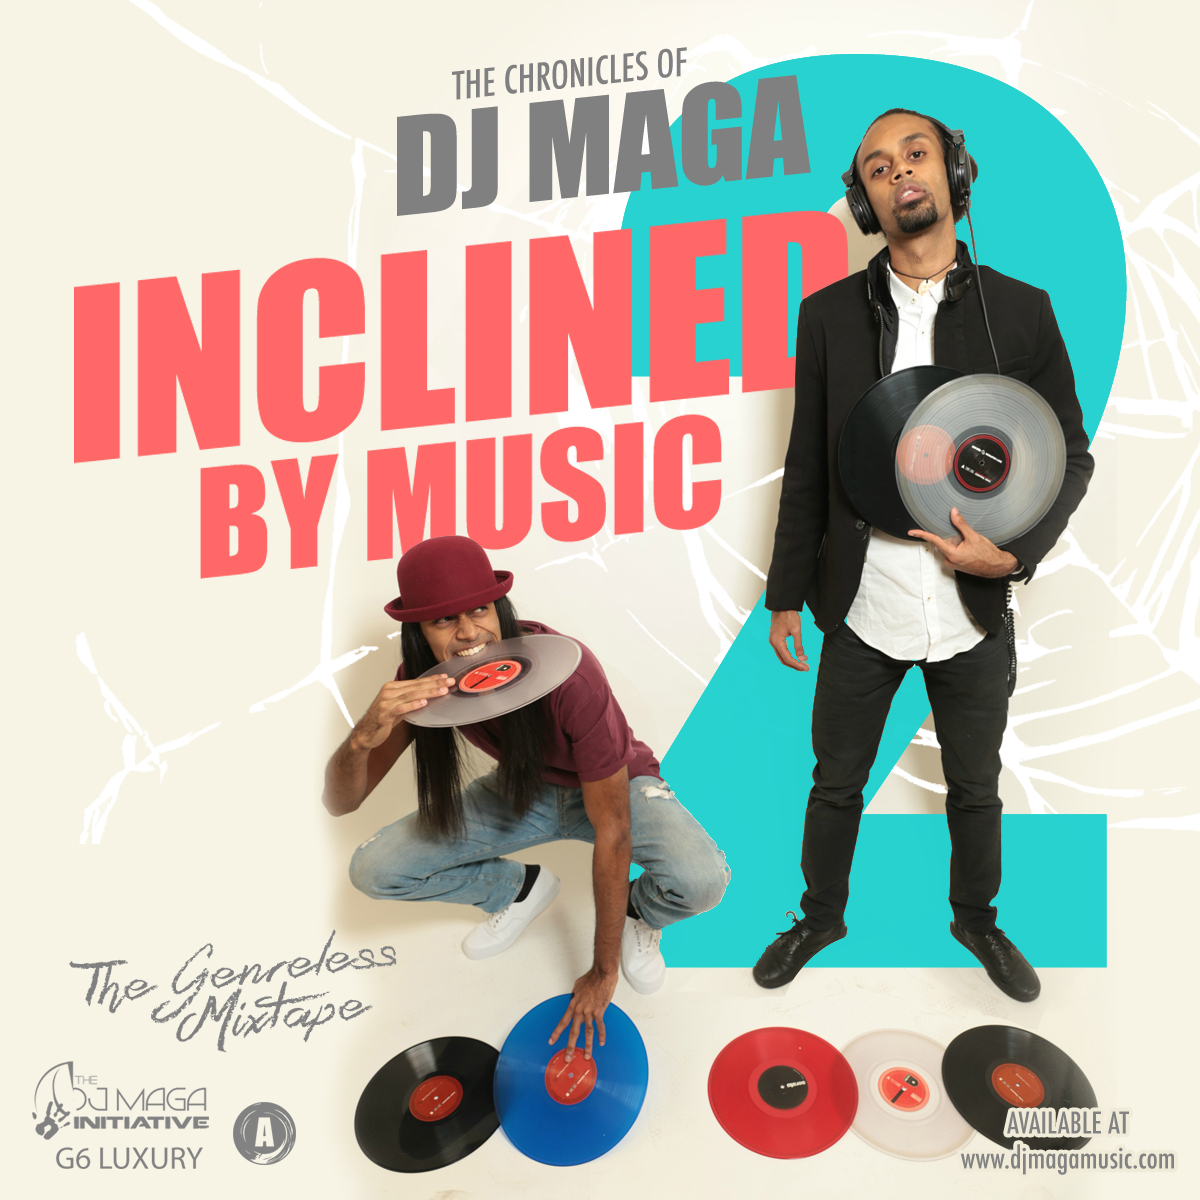 DJ Maga - Inclined by Music 2